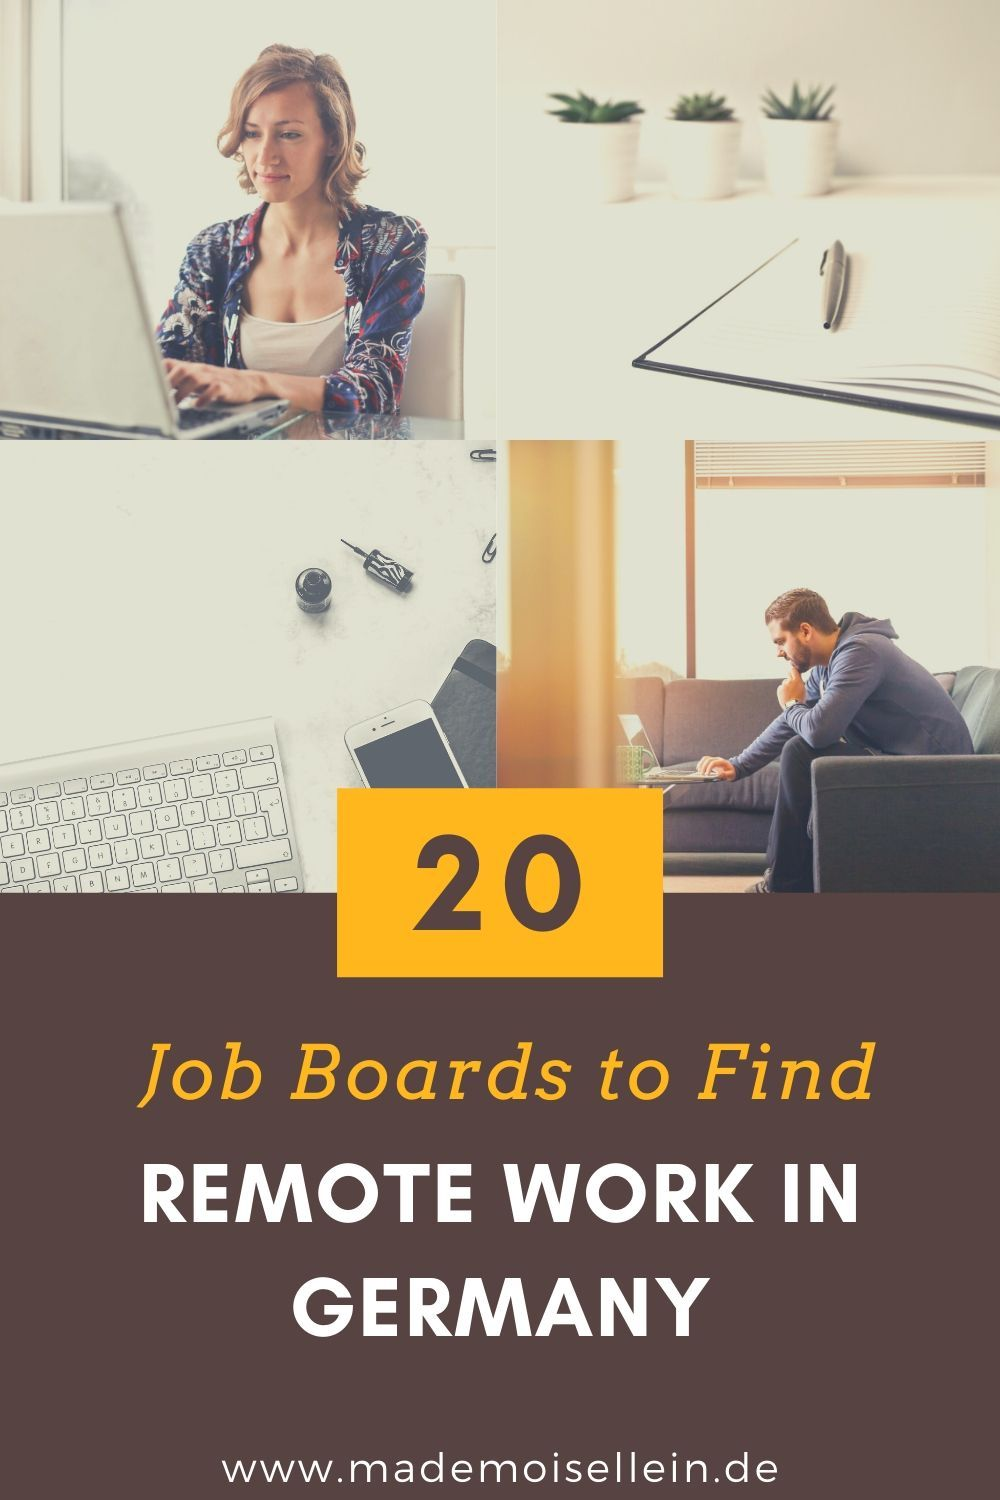 20 Websites to Find Remote Work in Germany Mademoiselle